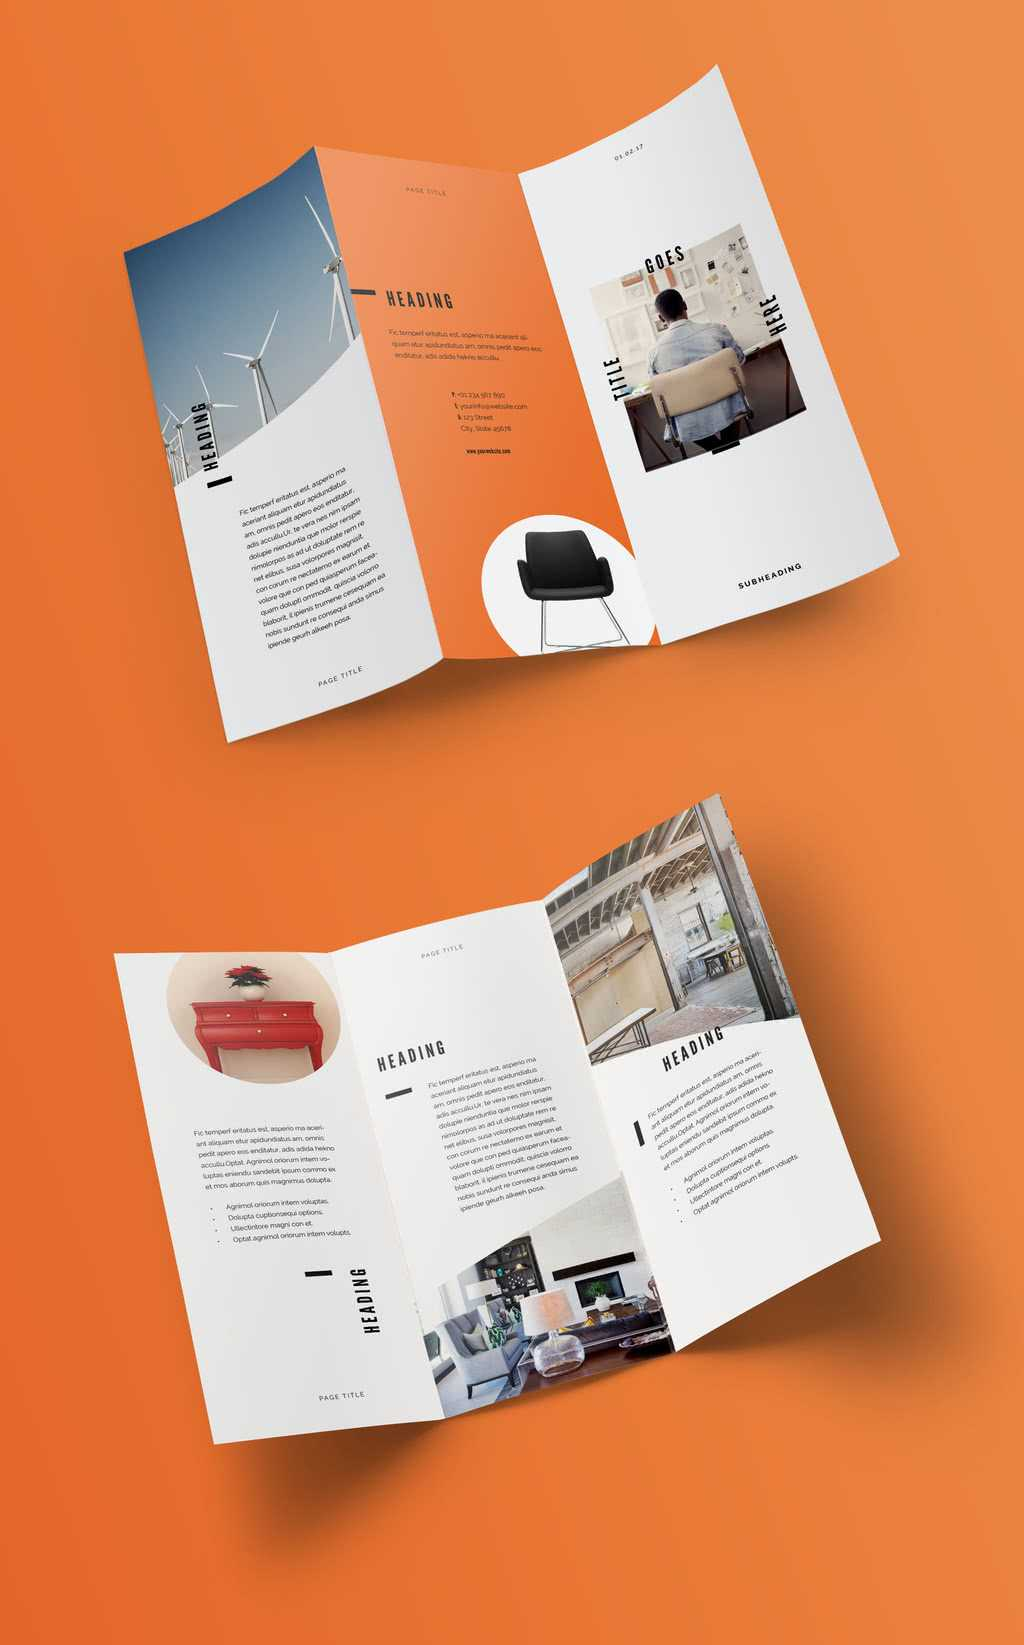 75 Fresh Indesign Templates And Where To Find More within Adobe Indesign Brochure Templates